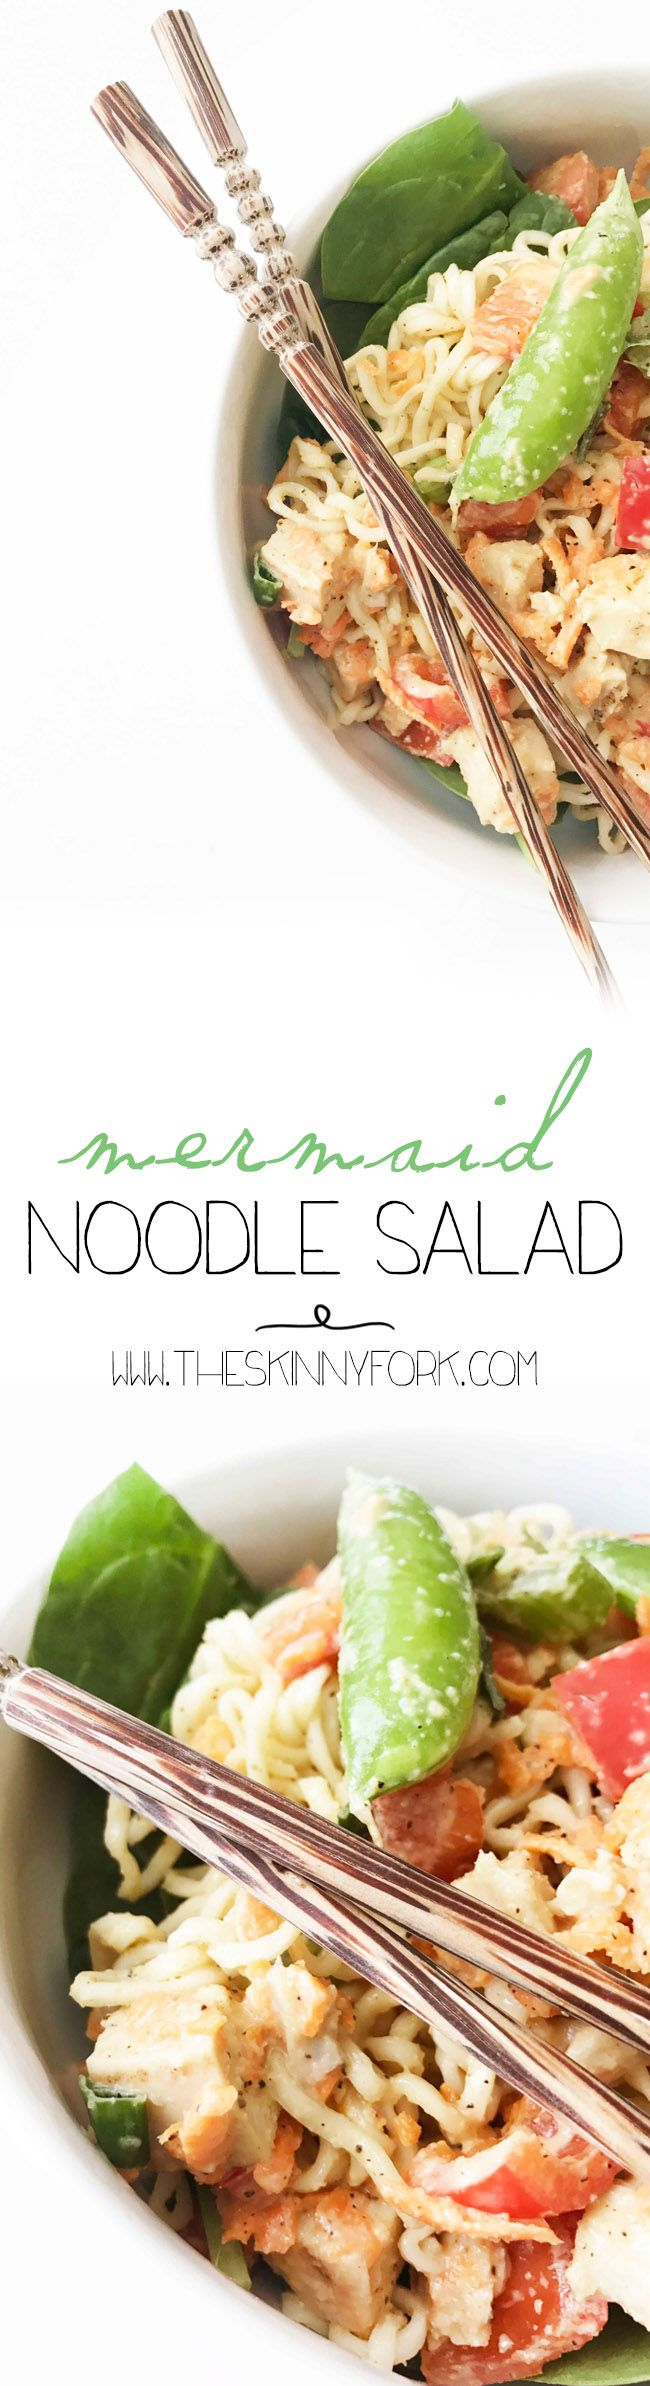 Ever wonder what mermaids eat? This Mermaid Noodle Salad is an old family favorite that's tasty, easy to make, full of veggies, and perfect for these hot summer days! TheSkinnyFork.com | Skinny & Healthy Recipes